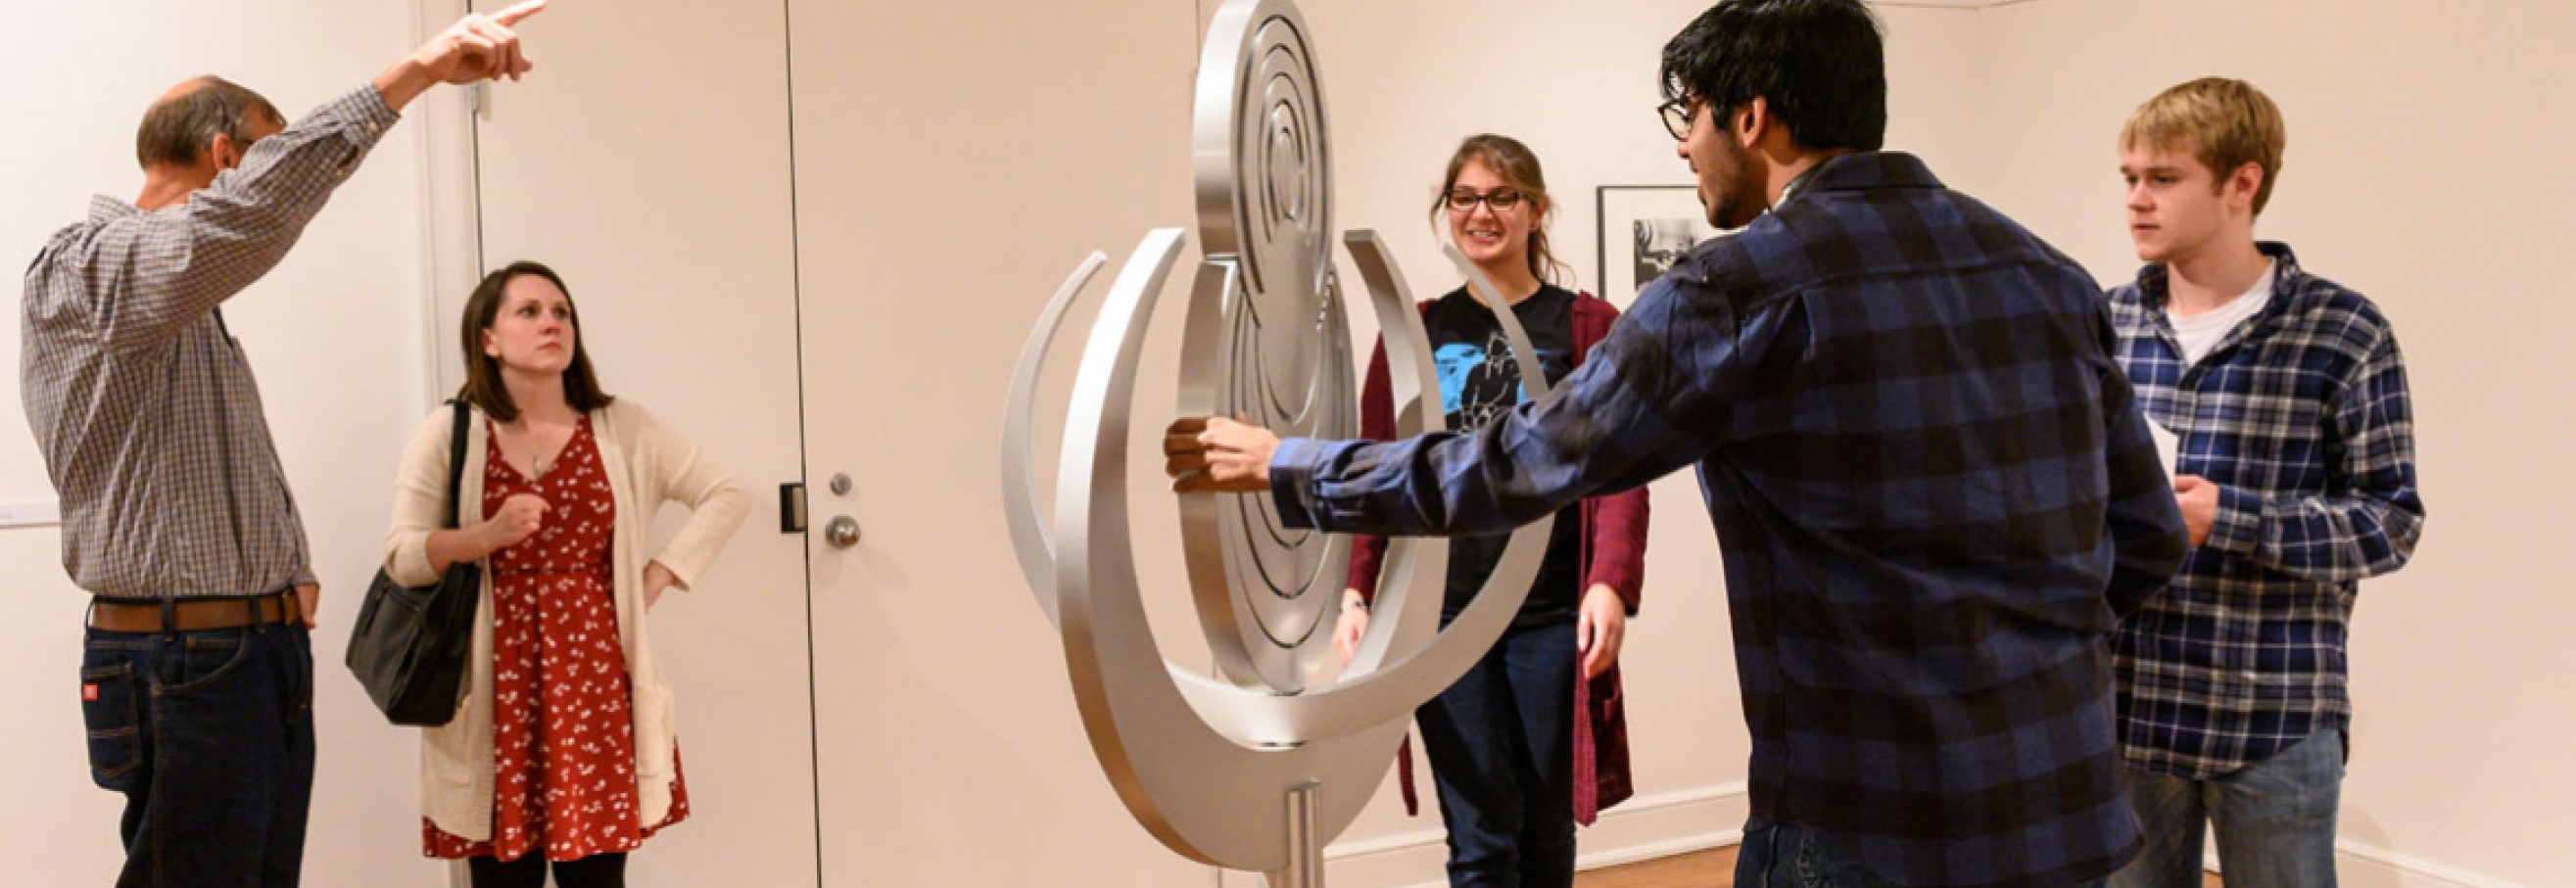 Students and faculty look at an artistic sculpture